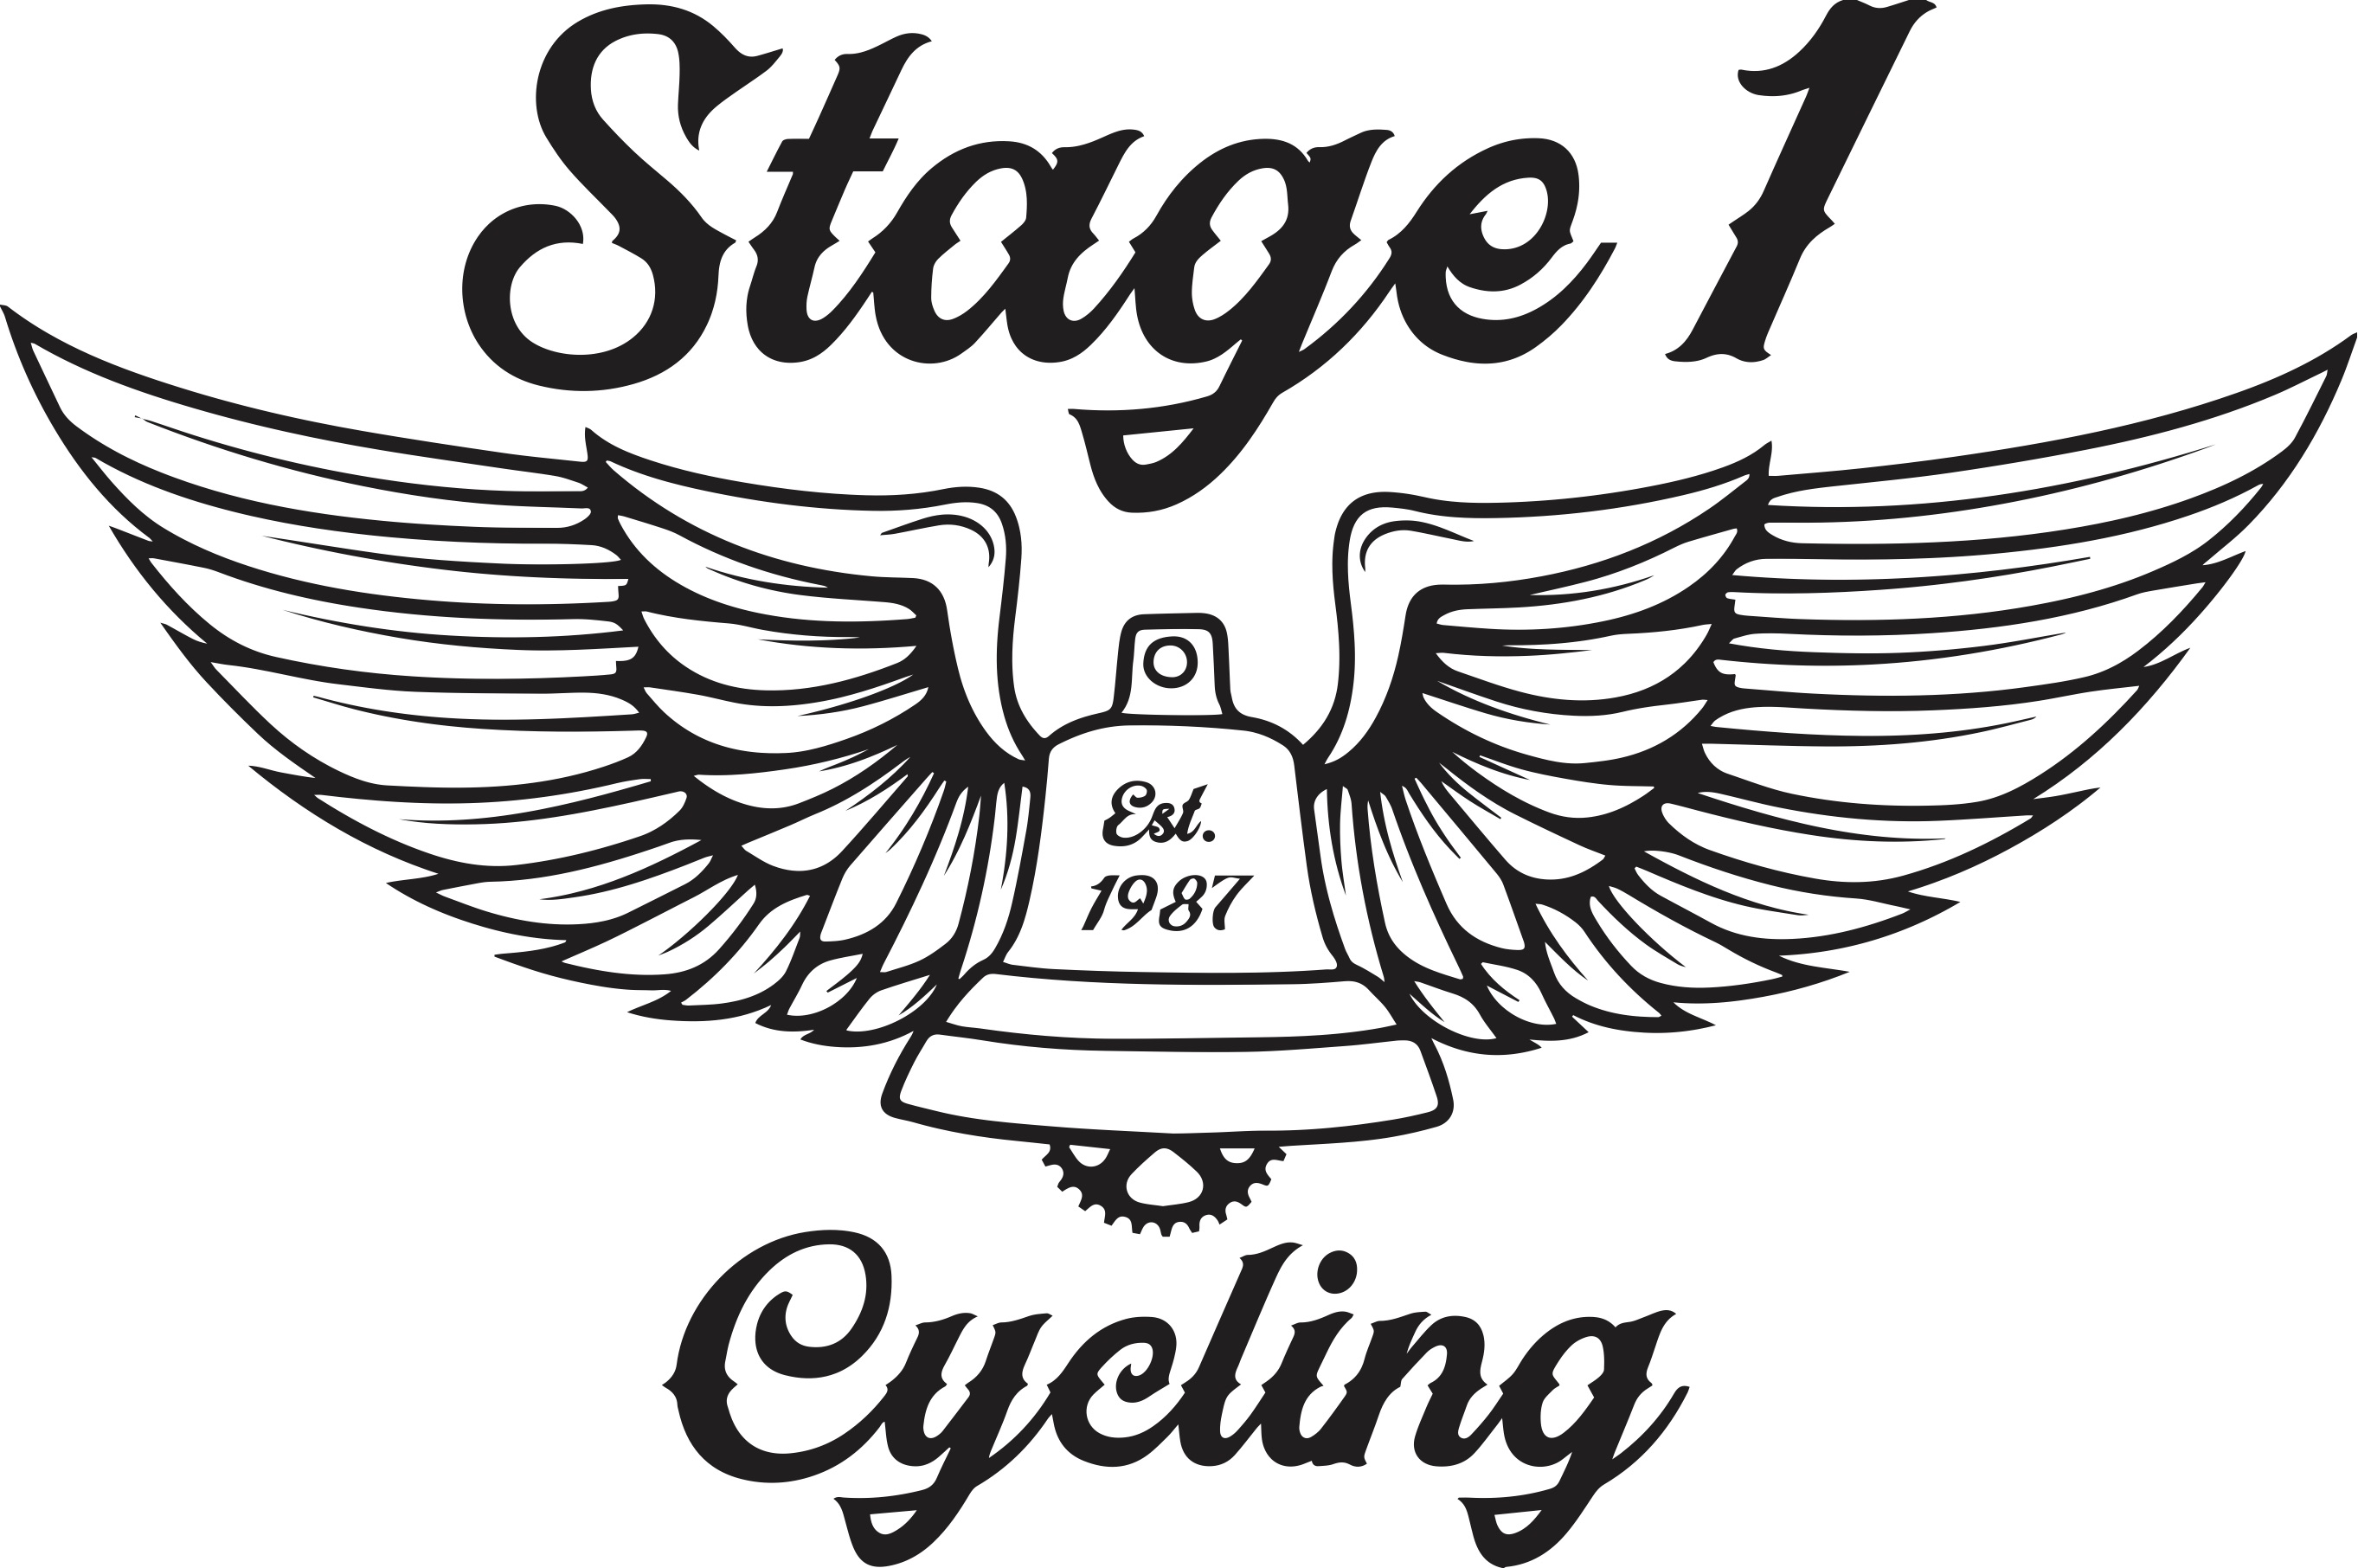 Stage 1 Cycles